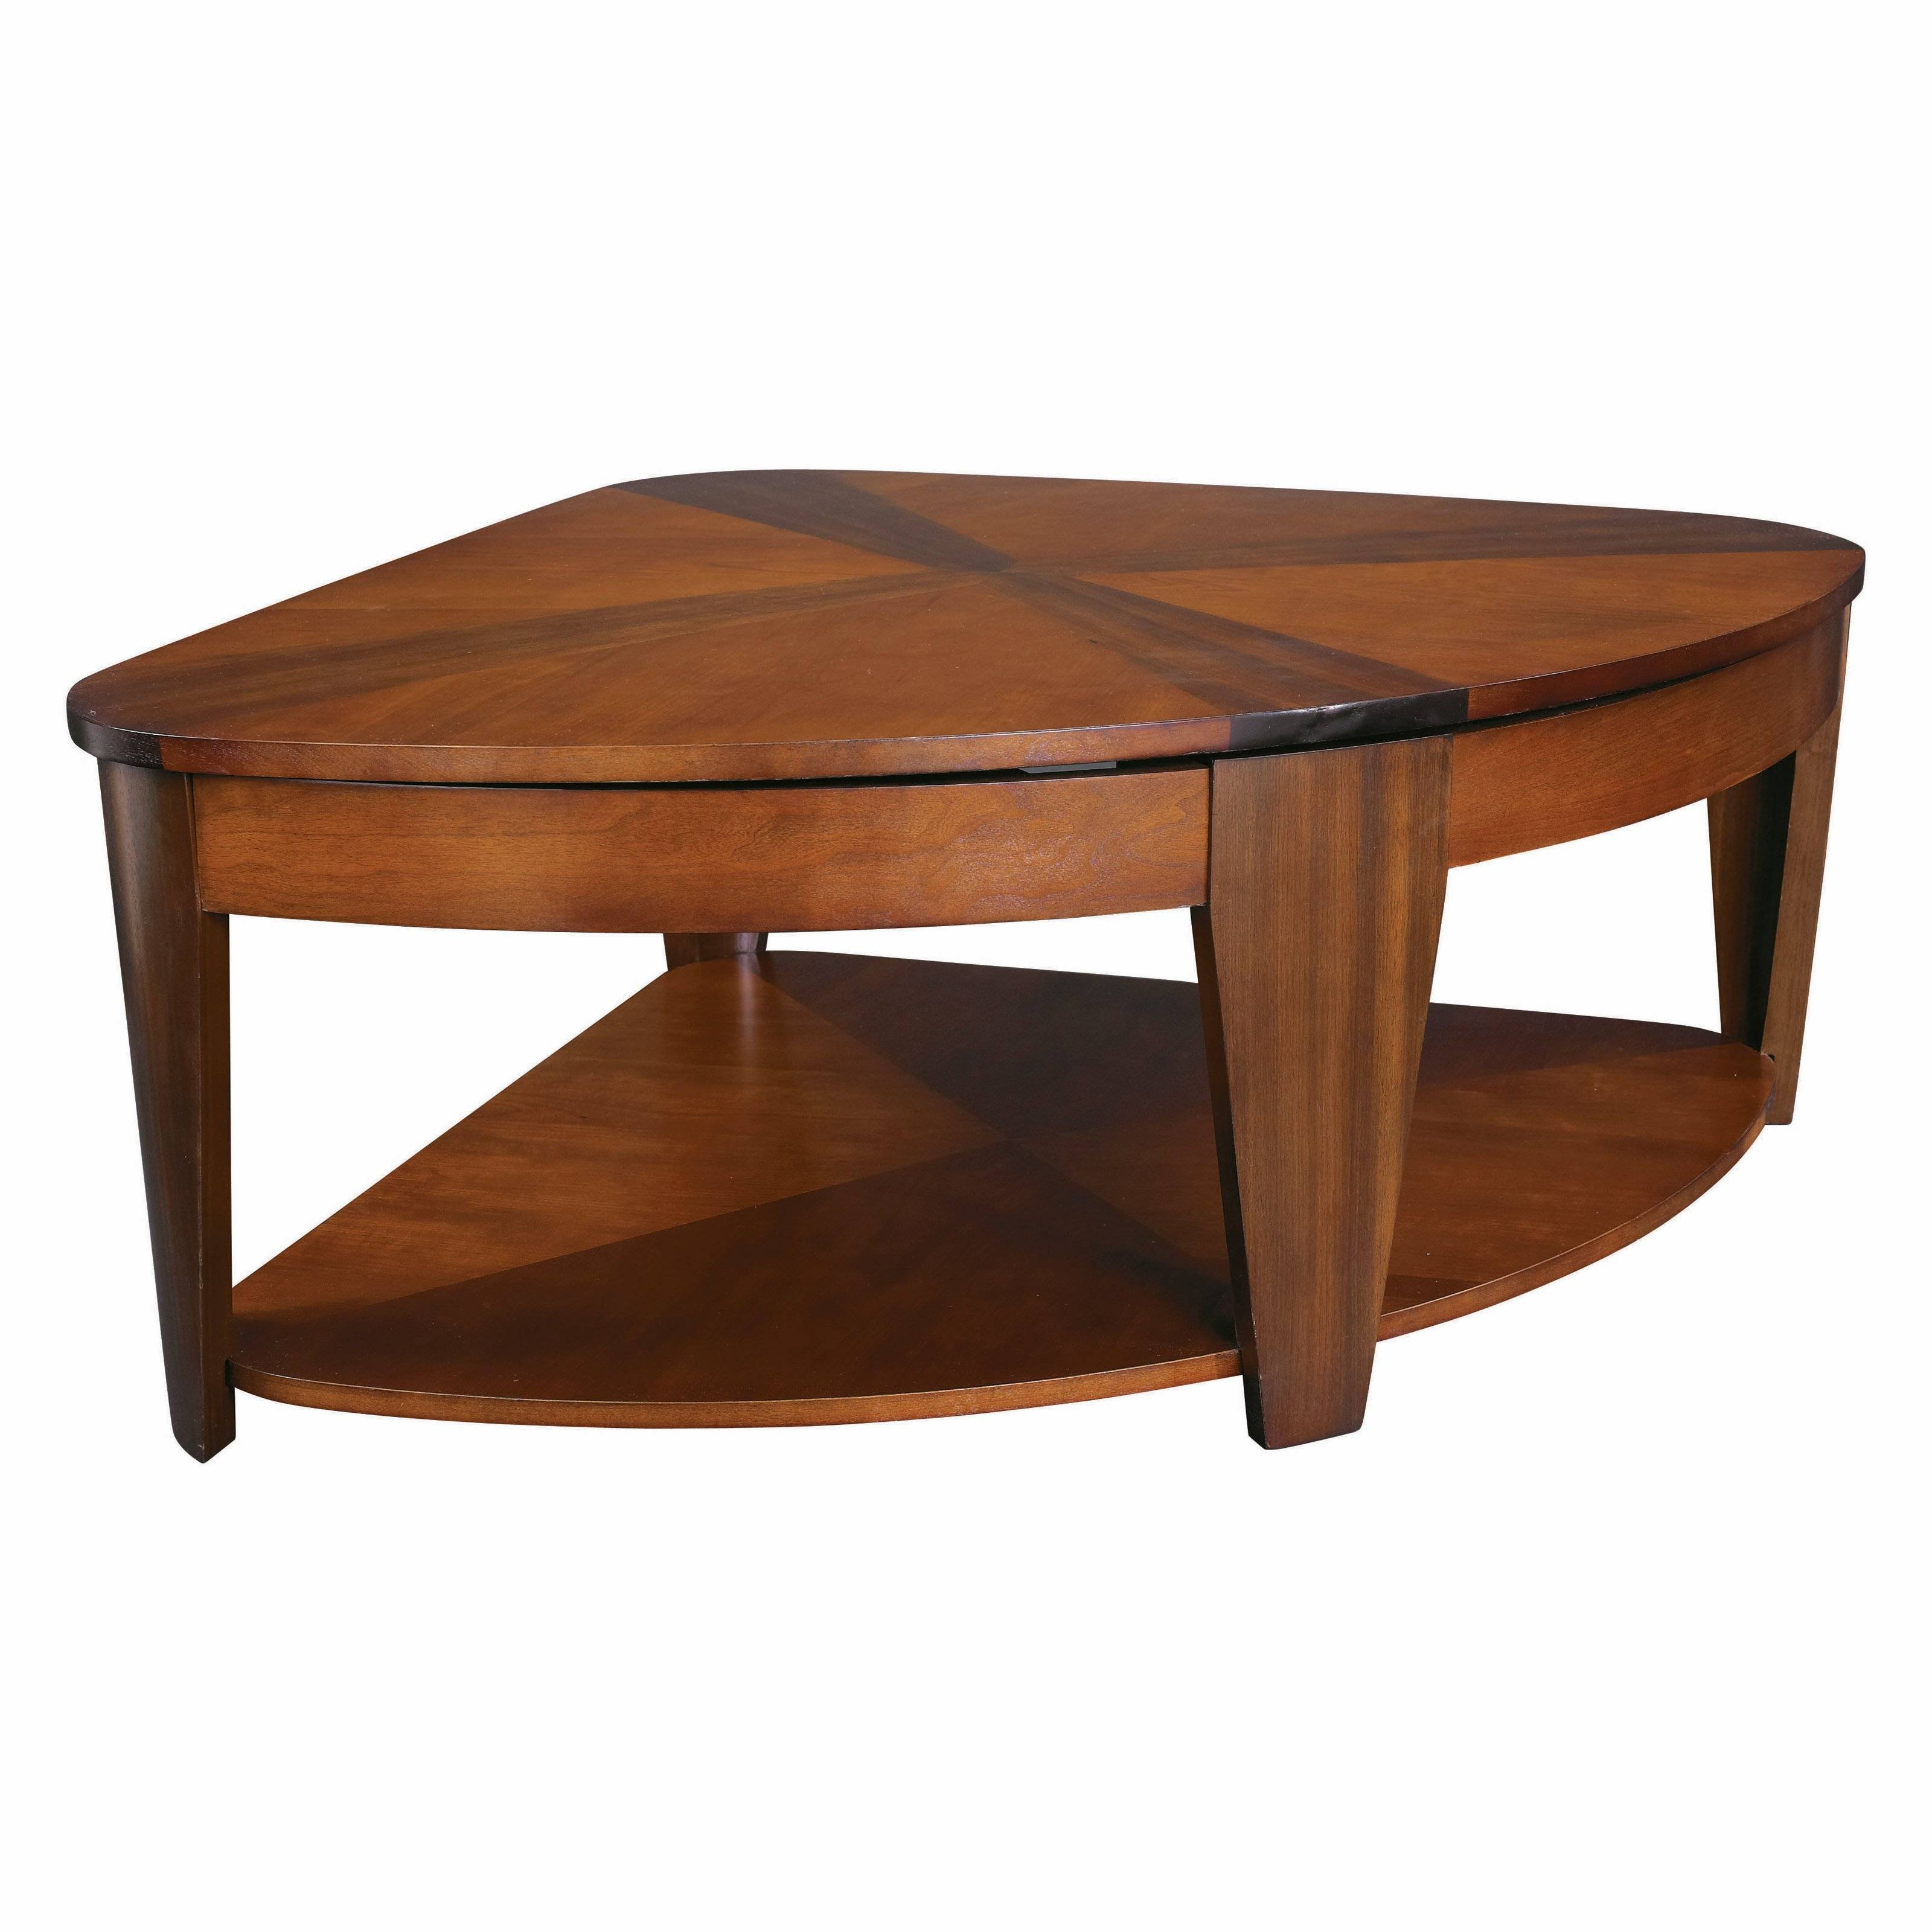 Hammary Oasis Wedge Lift-Top Coffee Table | Hayneedle inside Bombay Coffee Tables (Image 16 of 30)